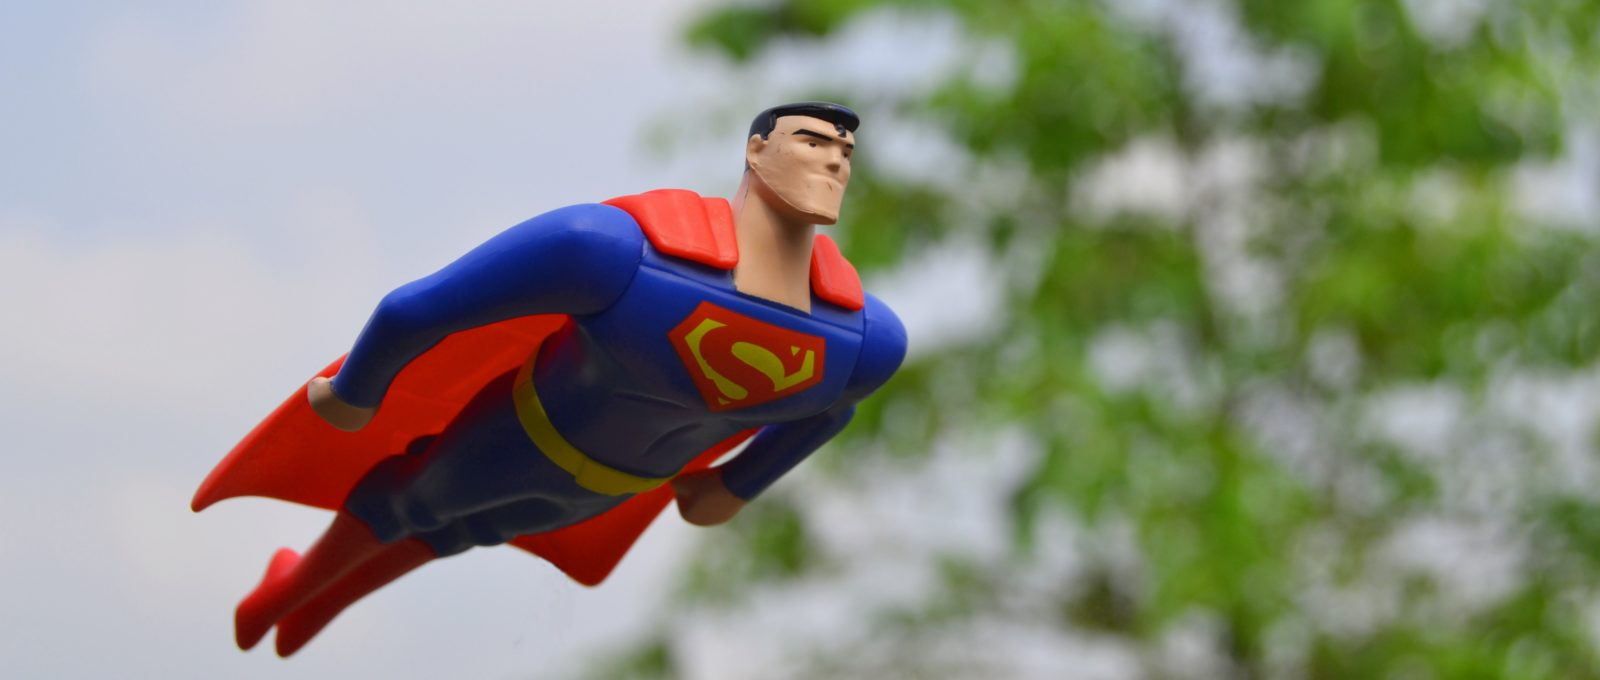 Superman Figure flying in front of green tree in blurry background